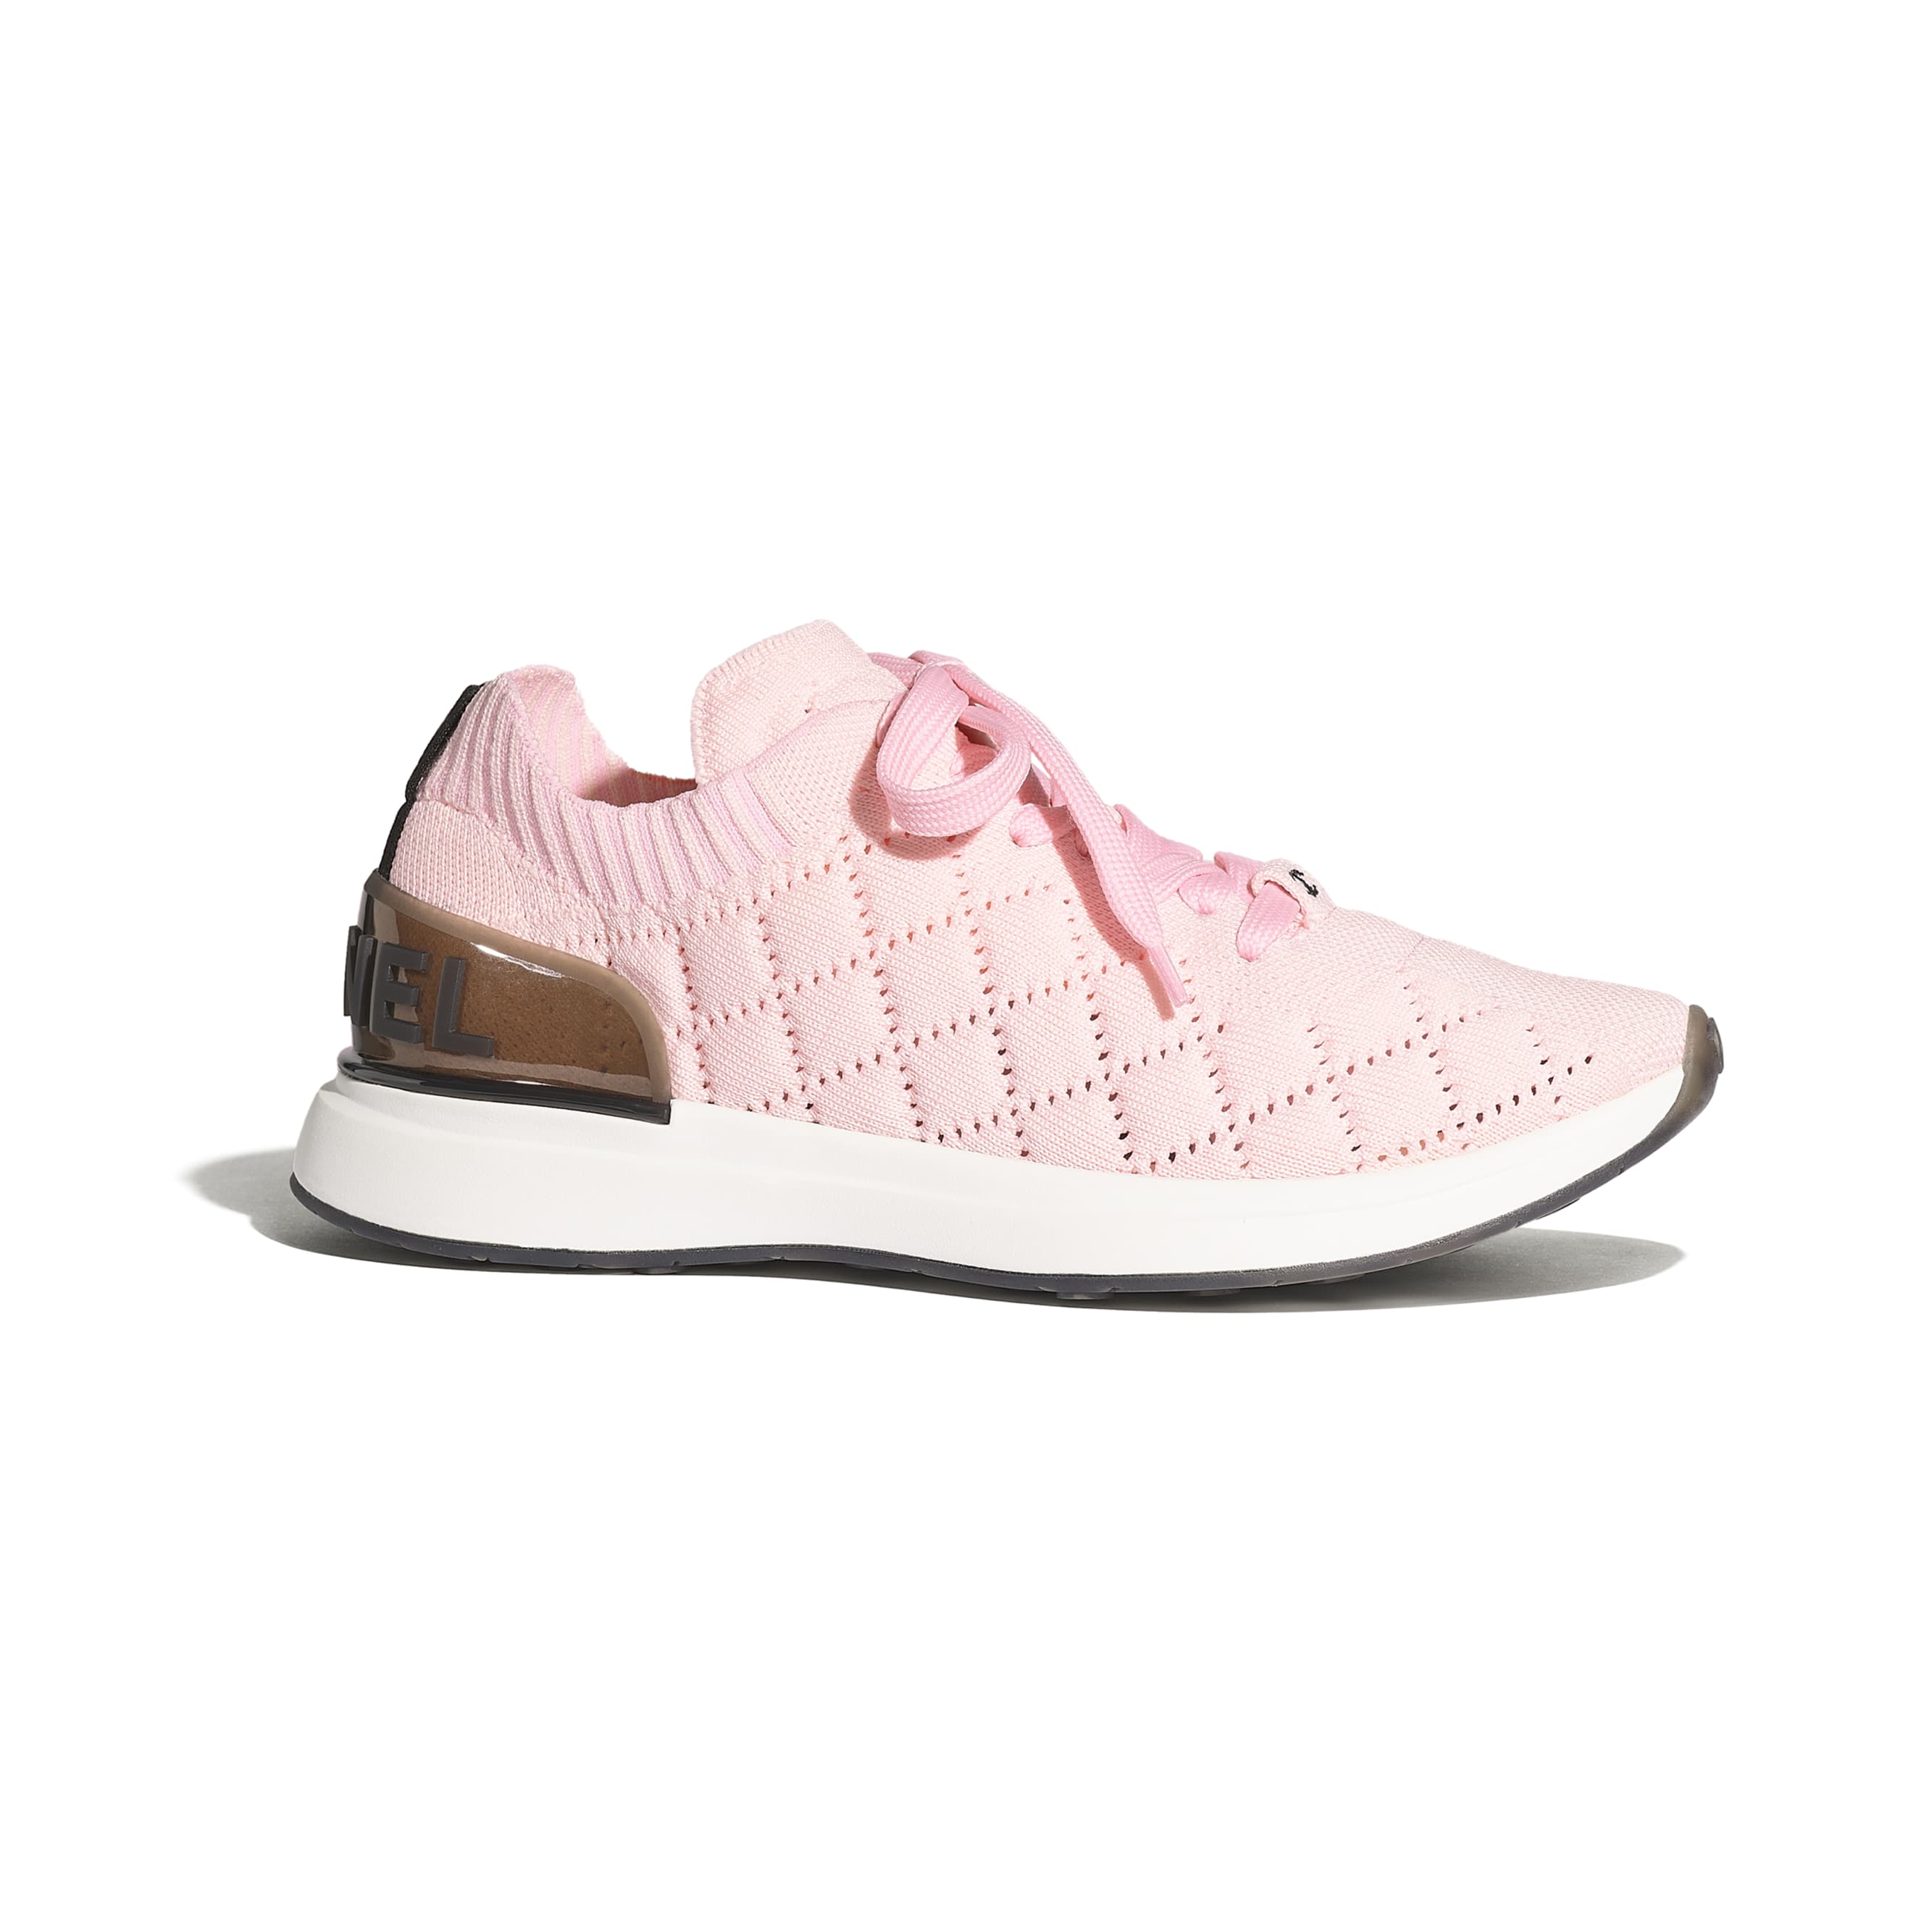 Trainers - Pink - Mixed Fibres - Default view - see standard sized version